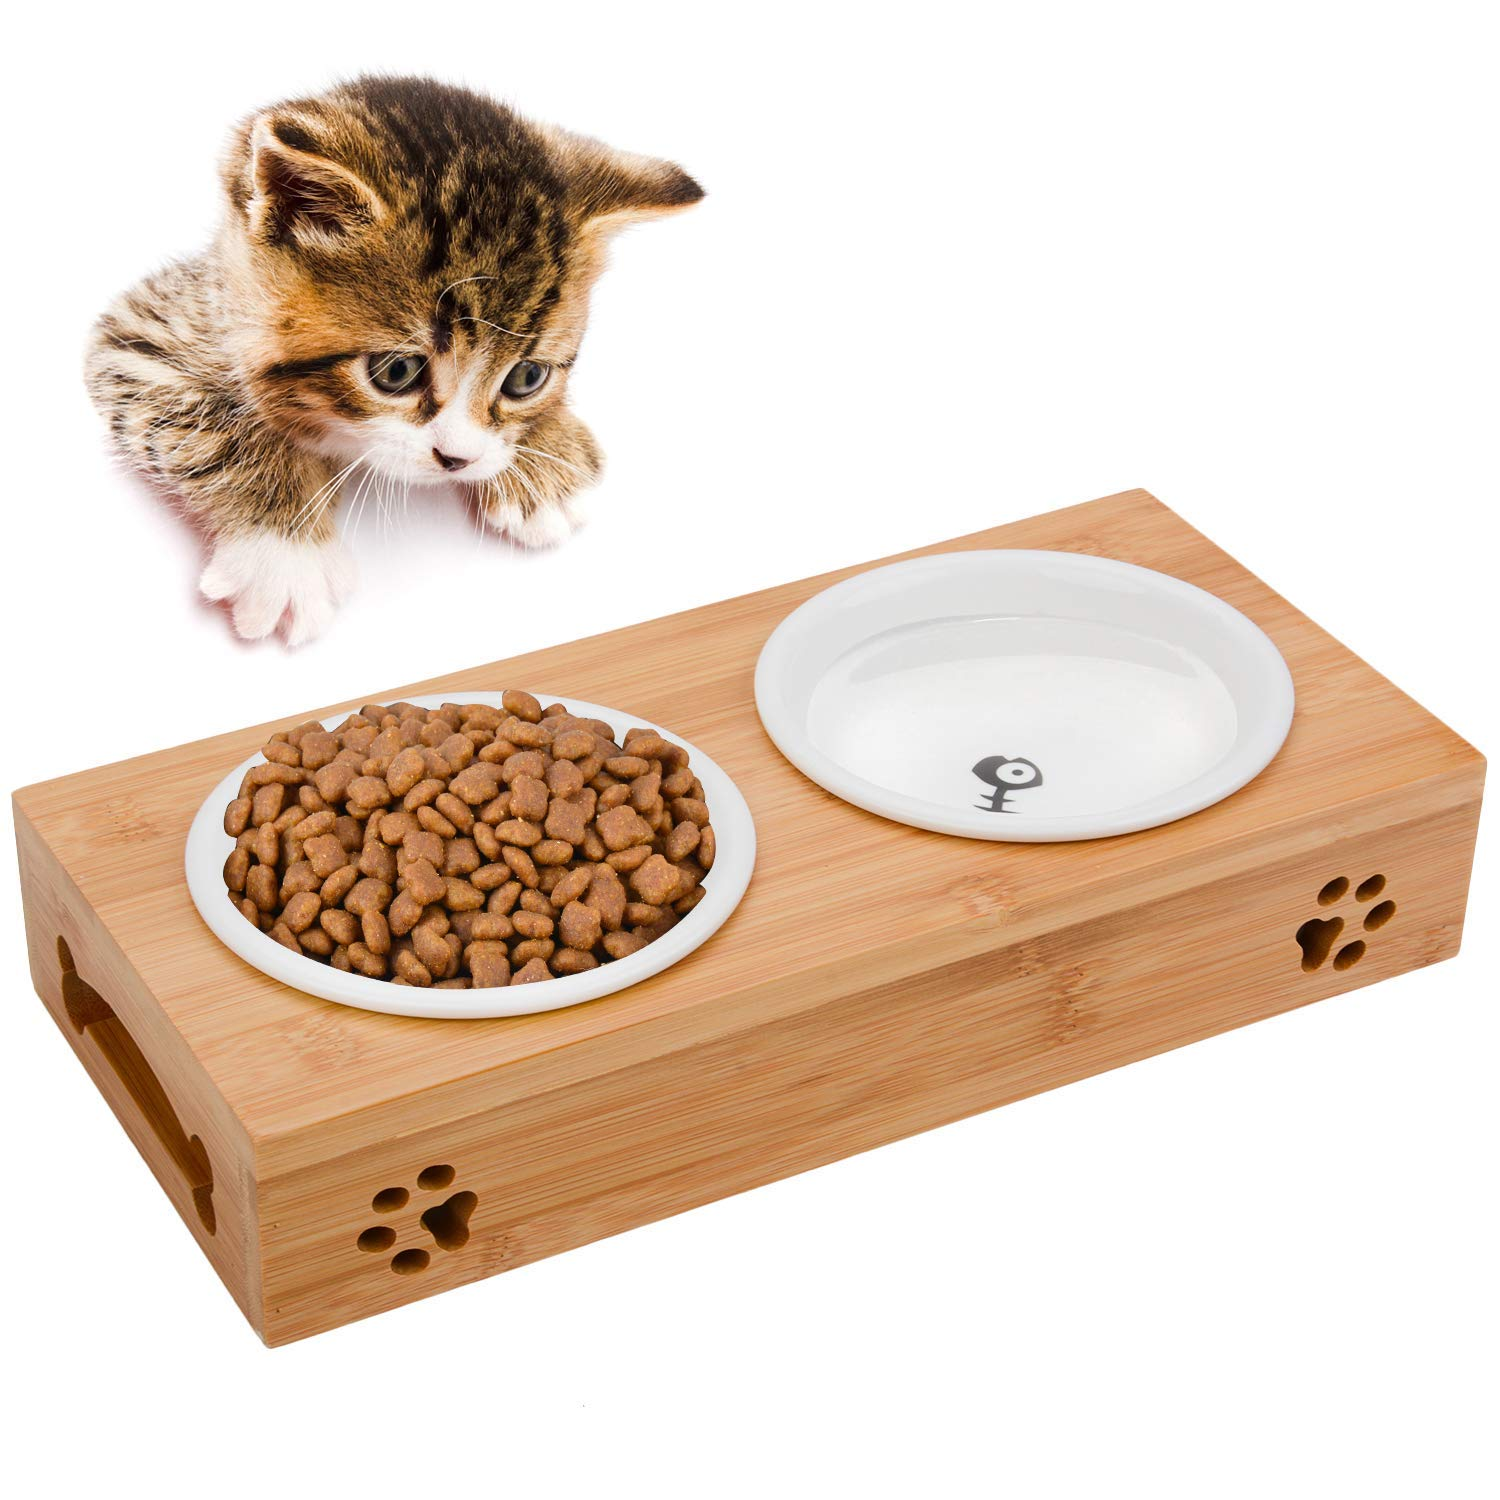 Legendog Cat Bowls, Elevated Dog Cat Bowls, Fashion Cat CeramicBowl with Bamboo Stand, Cat Food Water Bowl, Pet Bowls for Cats and Small Dogs by Legendog